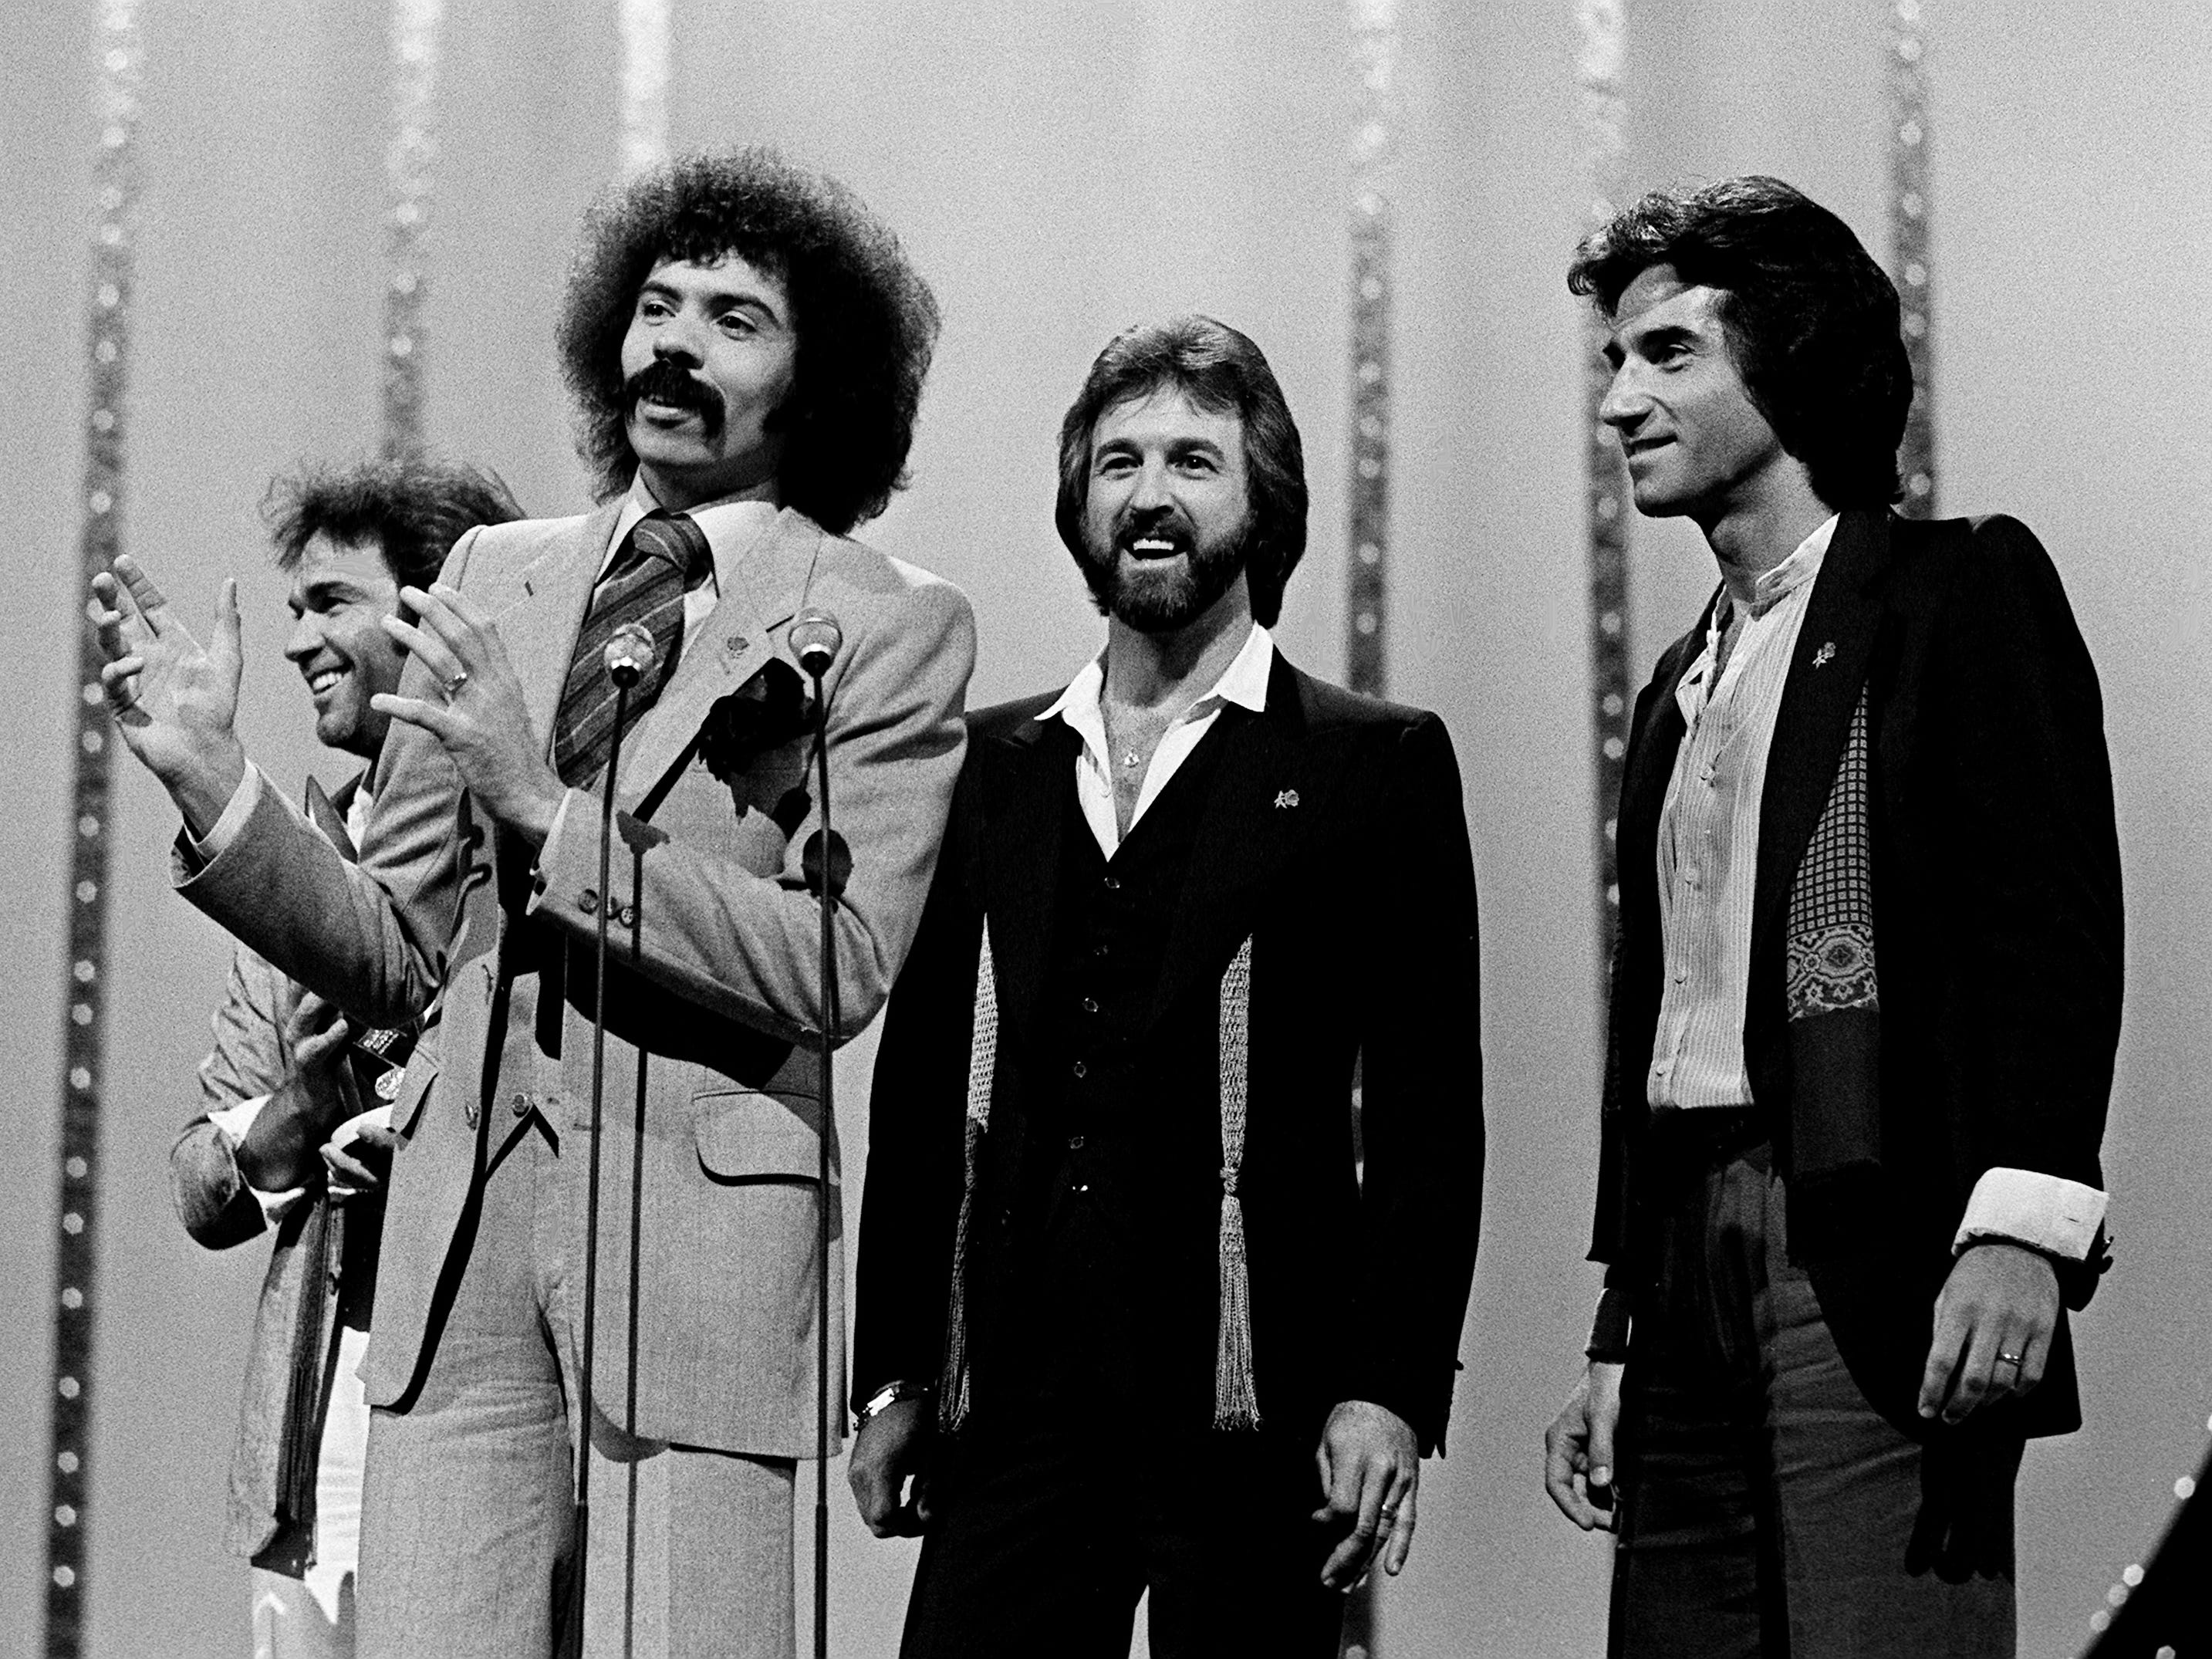 Joe Bonsall, second from left, speaks for the Oak Ridge Boys after they won the Vocal Group of the Year award during the 12th annual CMA Awards show Oct. 9, 1978. The Oak Ridge Boys, with members William Lee Golden, left, Duane Allen and Richard Sterban, were a gospel group until two years ago and won the award, which had been the property of the Statler Brothers for the past six years. They also won the Instrumental Group of the Year award.